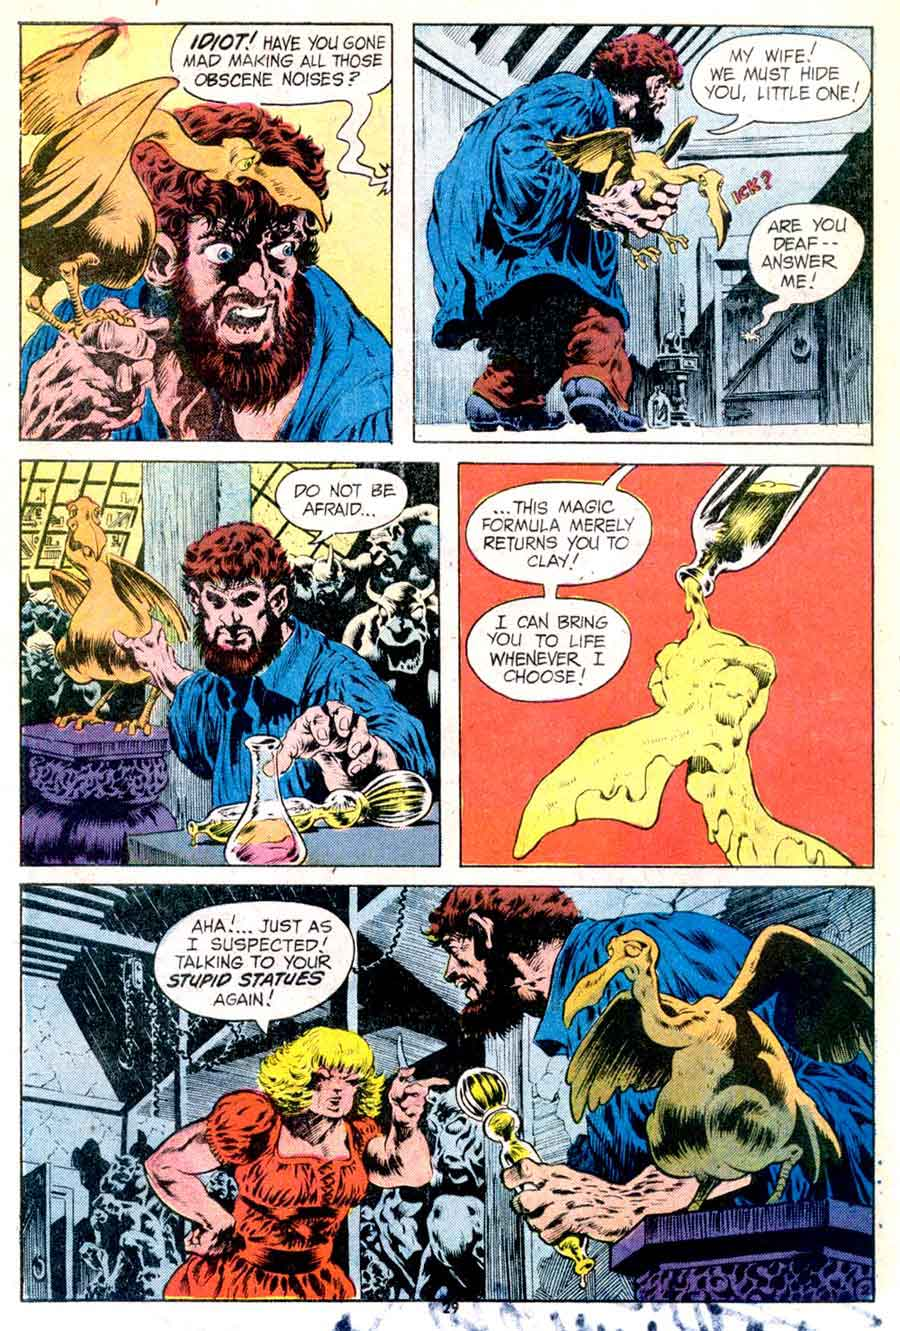 Plop v1 #5 dc 1970s bronze age comic book page art by Bernie Wrightson